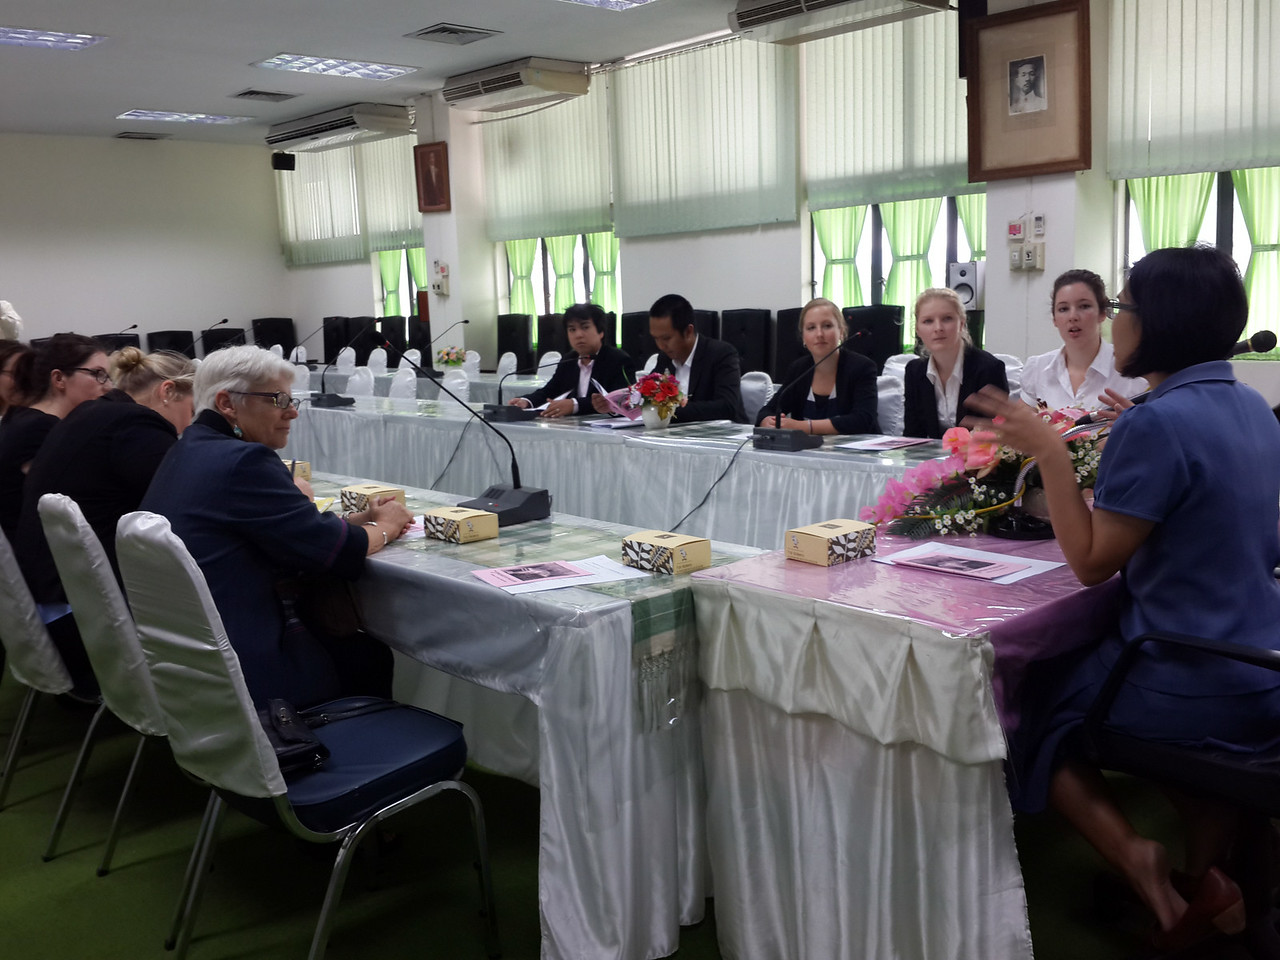 Interns went to the Chiang Mai Provincial Court to observe the trial in the courtroom. The judge explained historical and modern Thai law systems and opened for discussion.